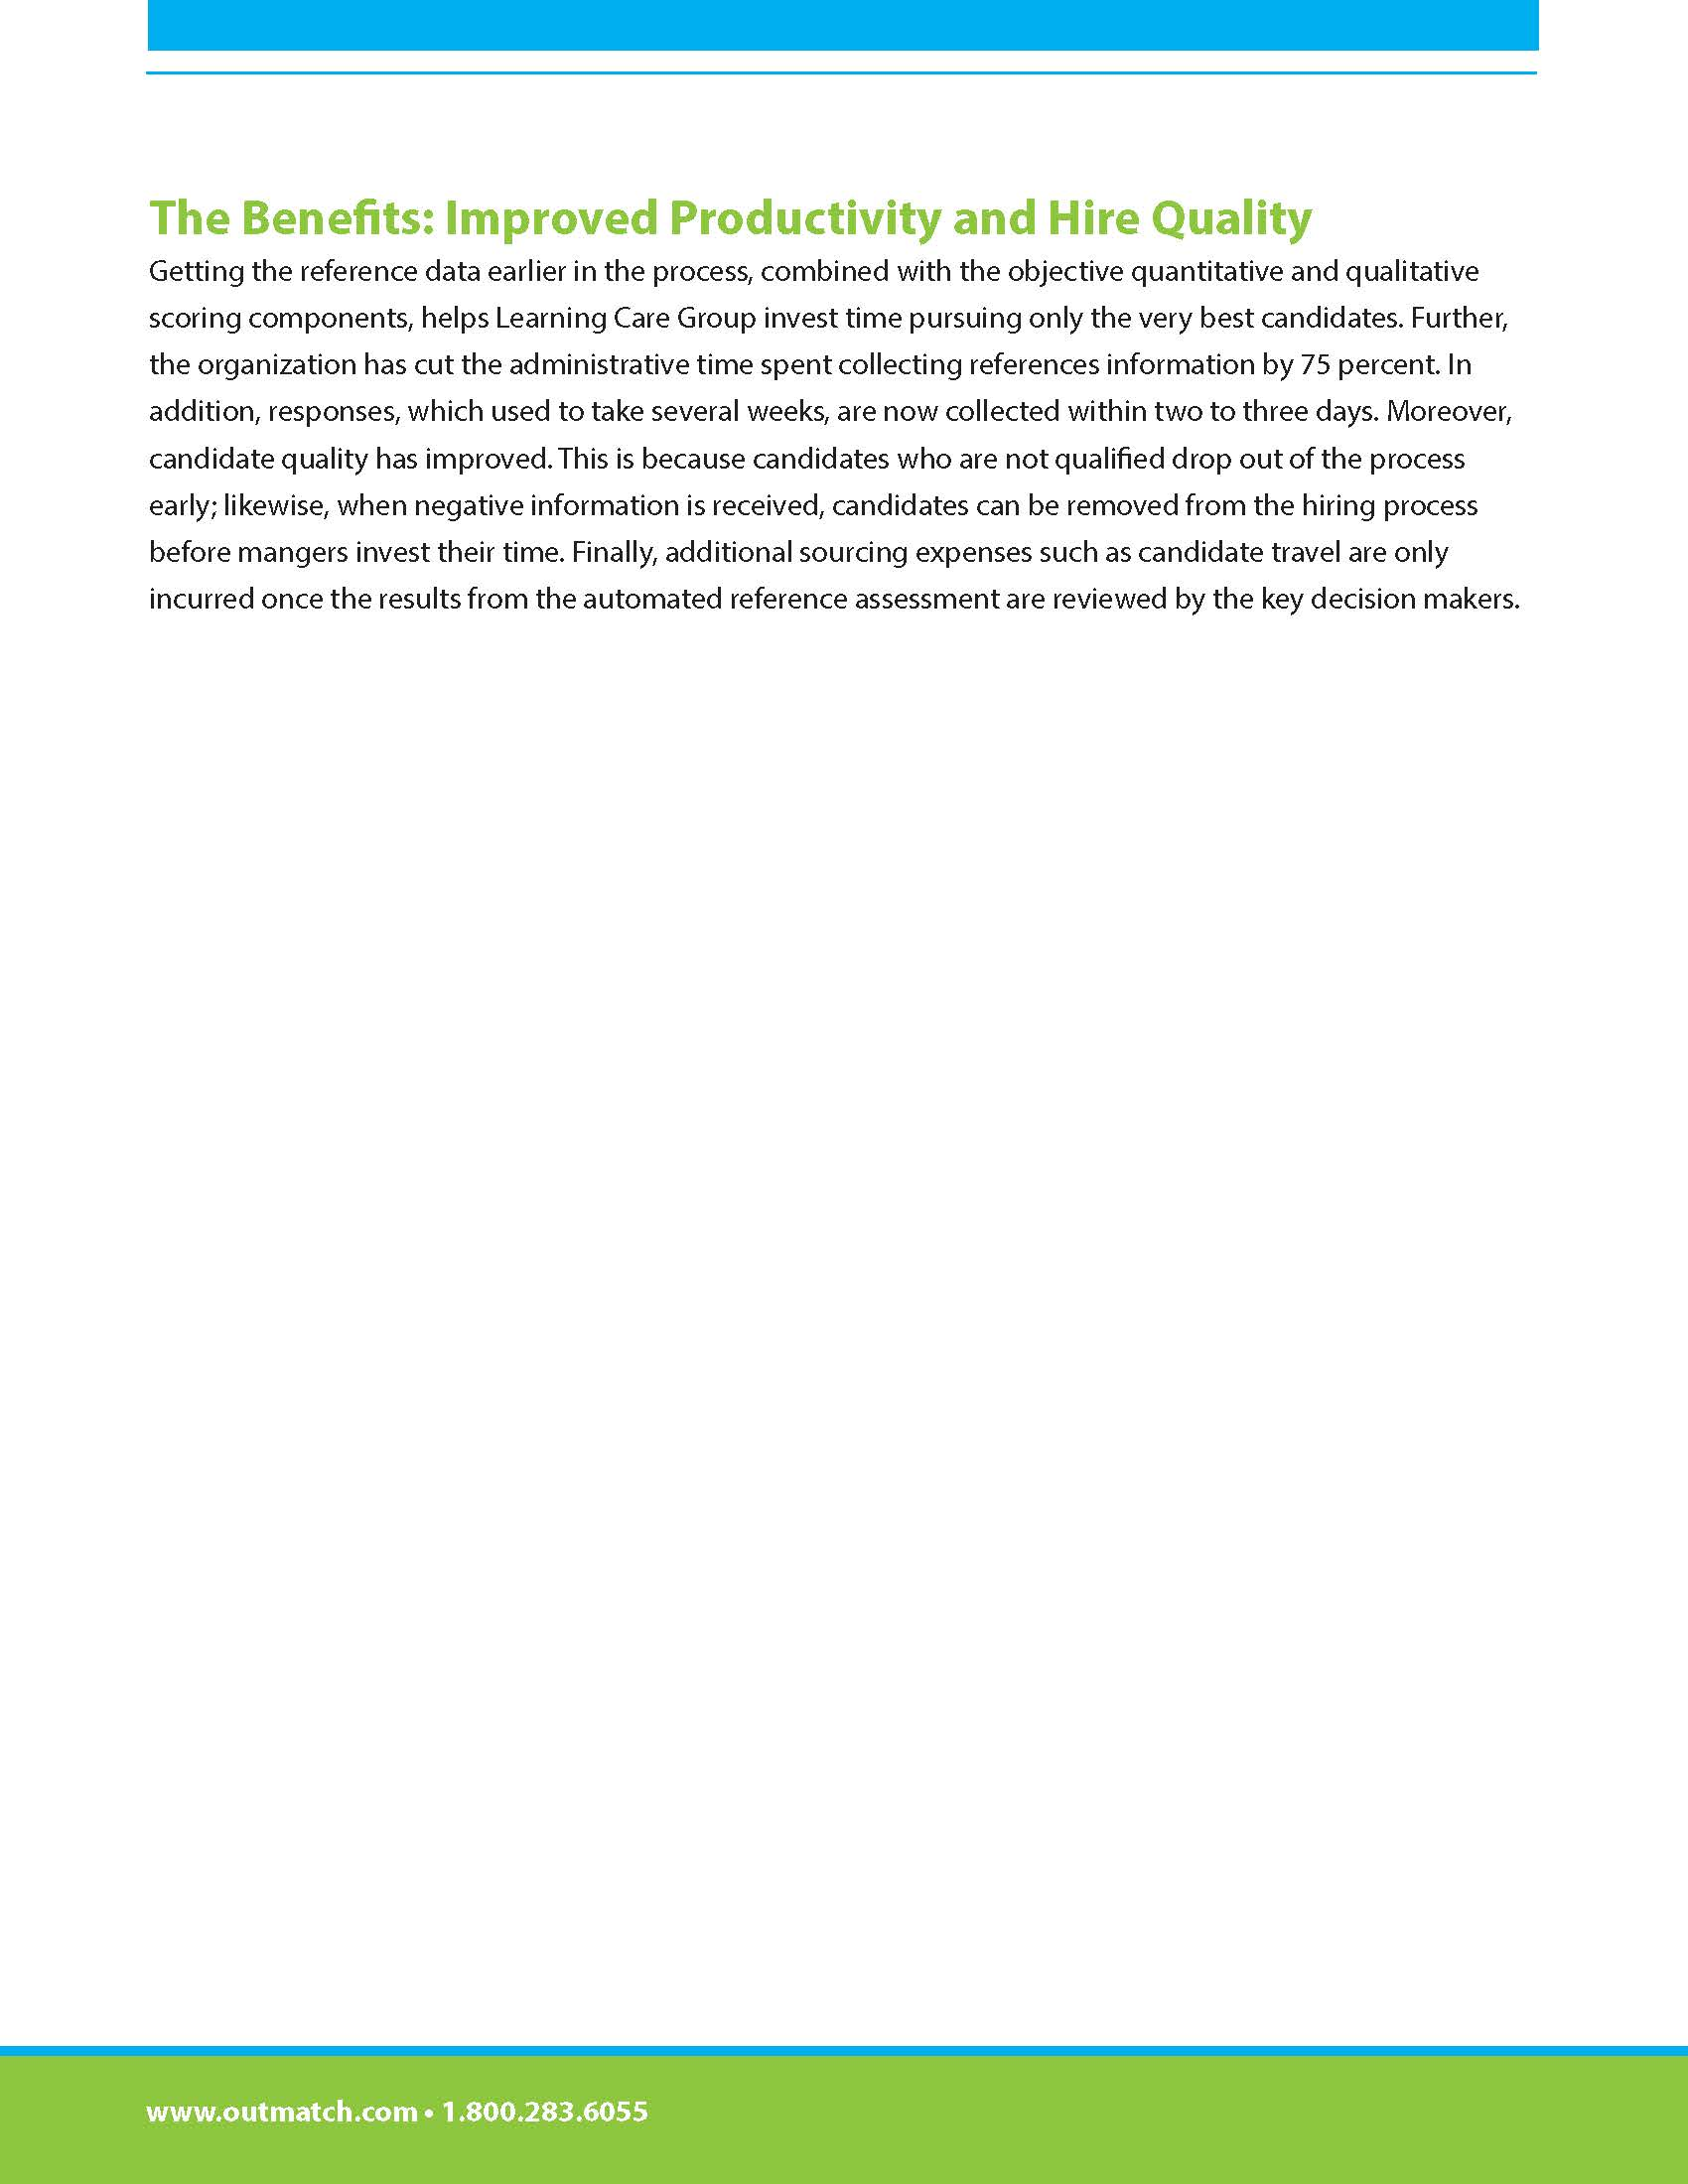 case-study-Learning Care Group_Page_4